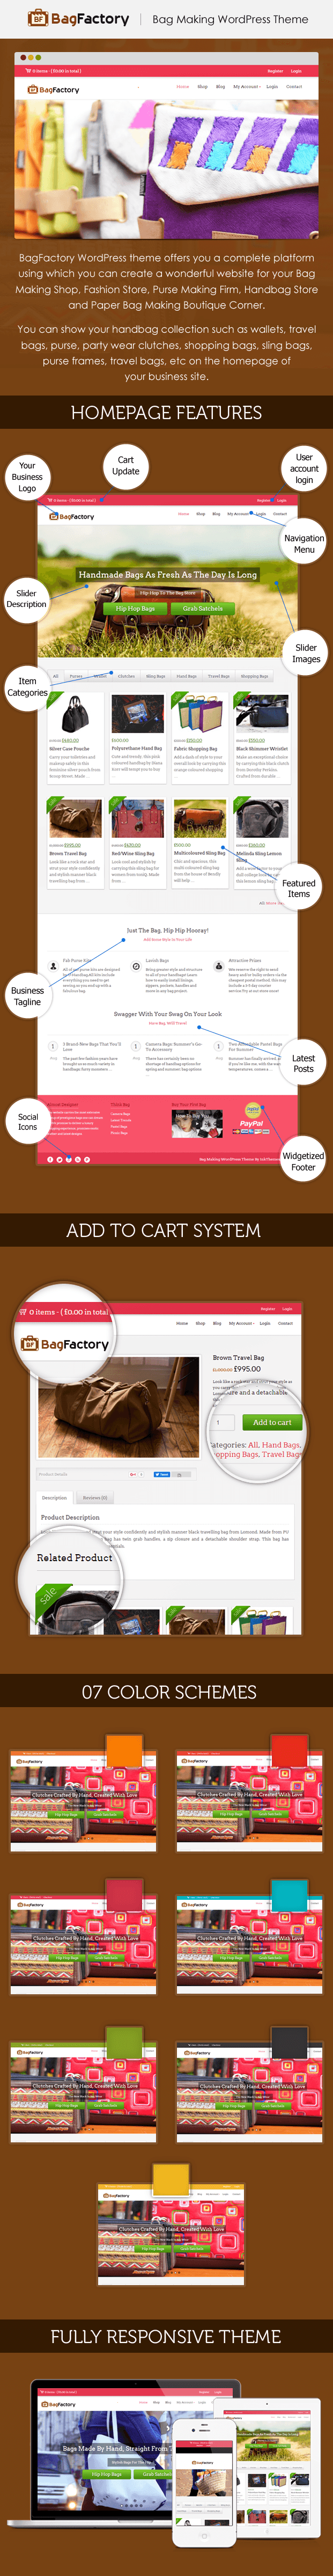 making wordpress templates - bag making handbag collection wordpress theme inkthemes